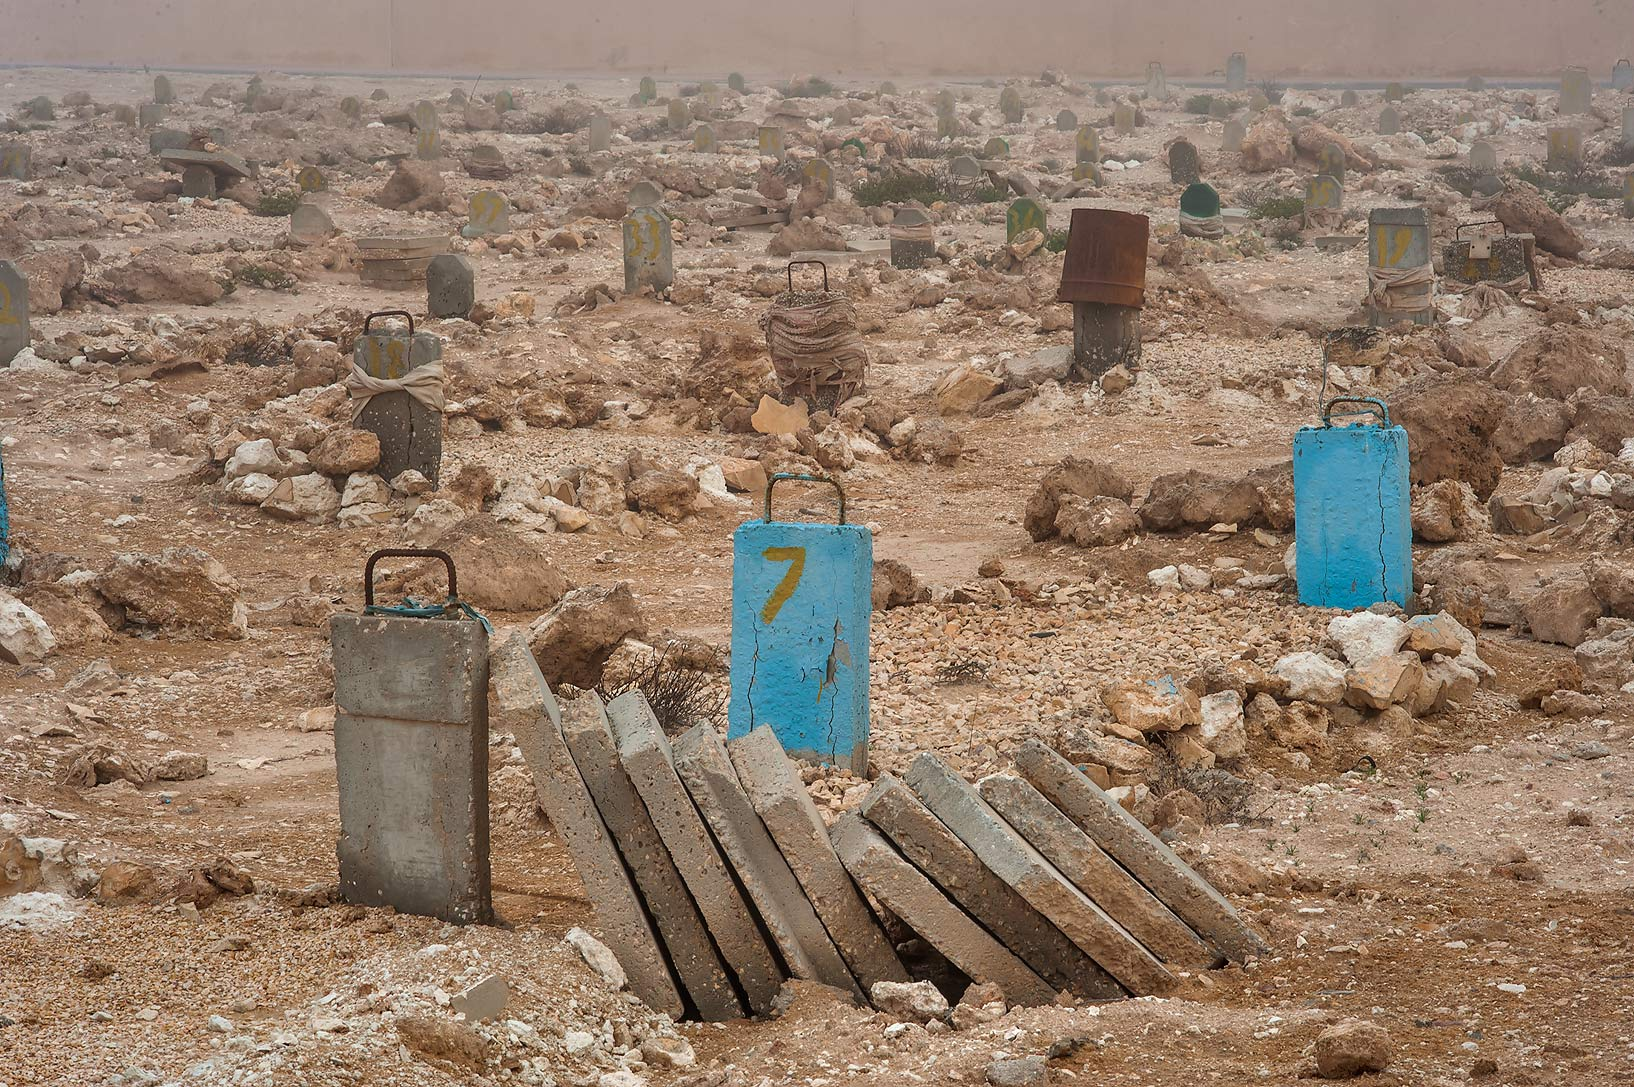 Stacked tombstones in Al Khor Cemetery. North from Al Khor, Qatar